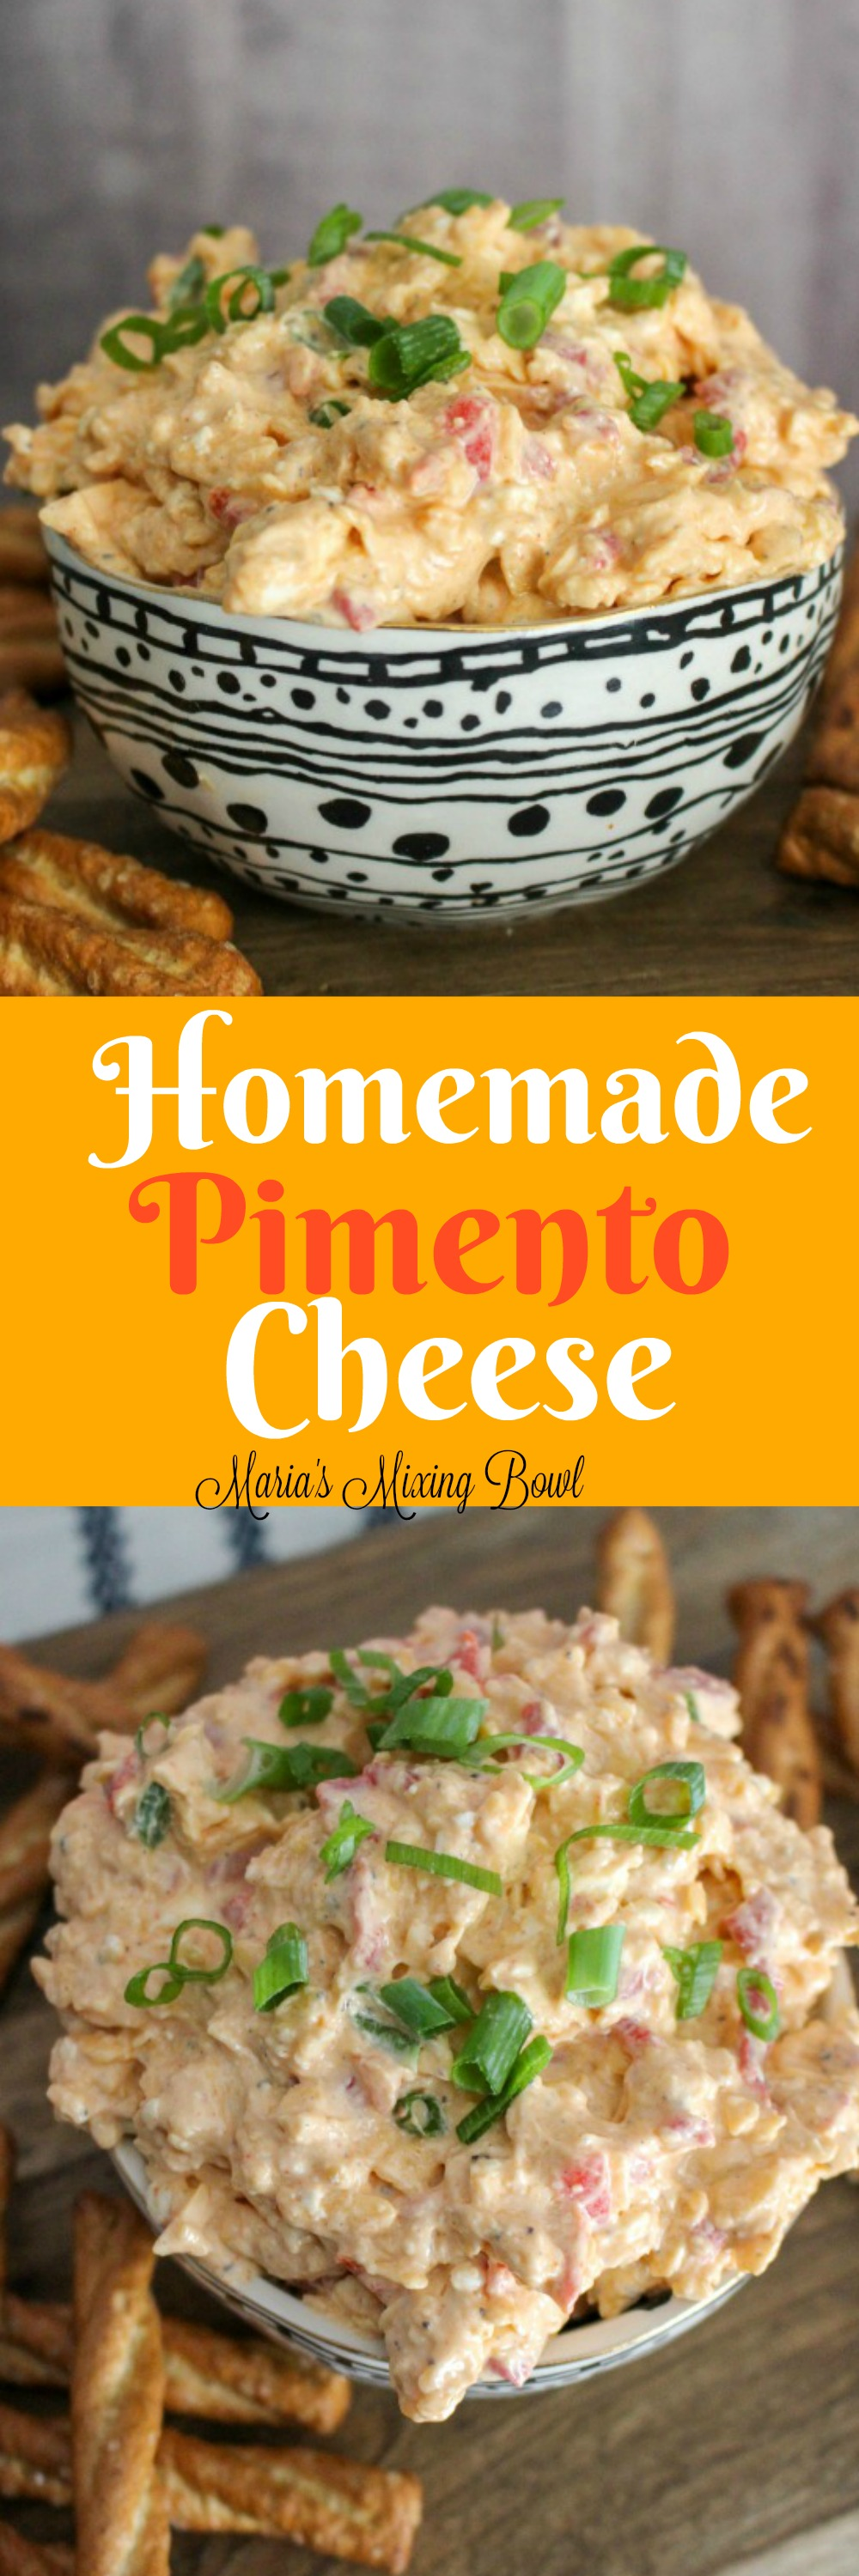 Homemade Pimento Cheese Recipe - A true Southern delicacy! I wasn't really sure about this cheese spread at first. Let me tell you...this stuff is addictive.